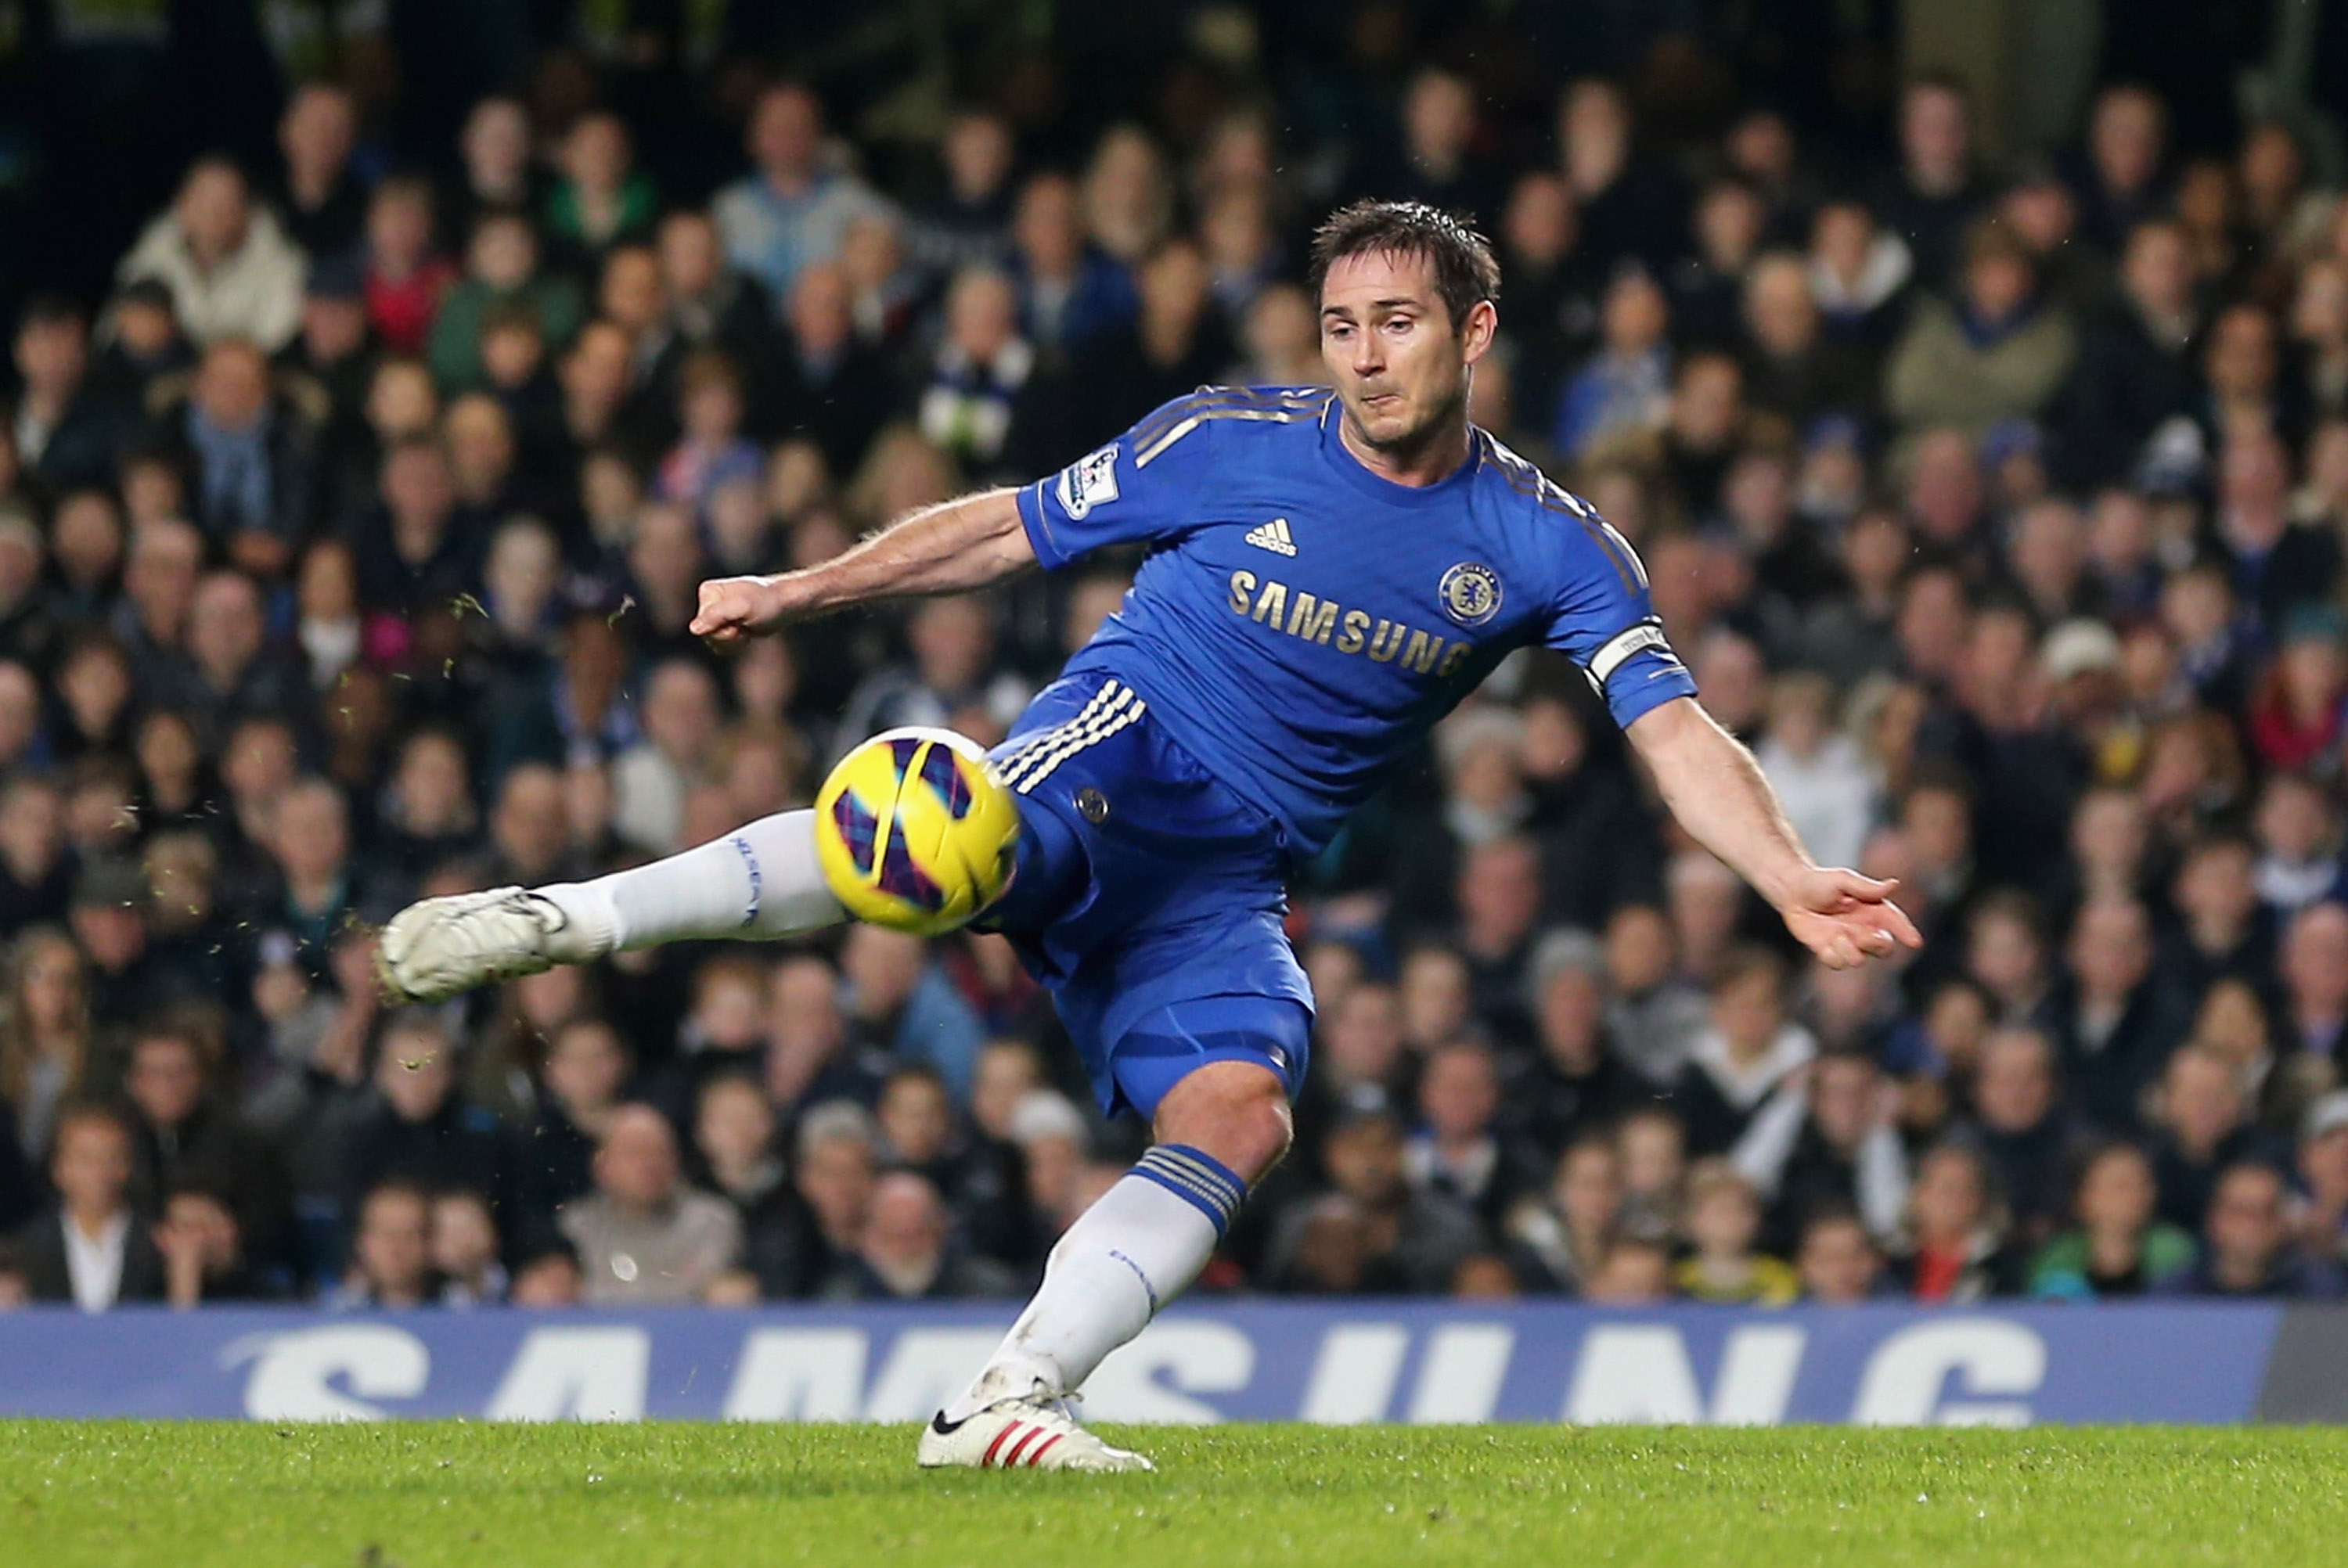 Frank-Lampard-HD-Deskt...